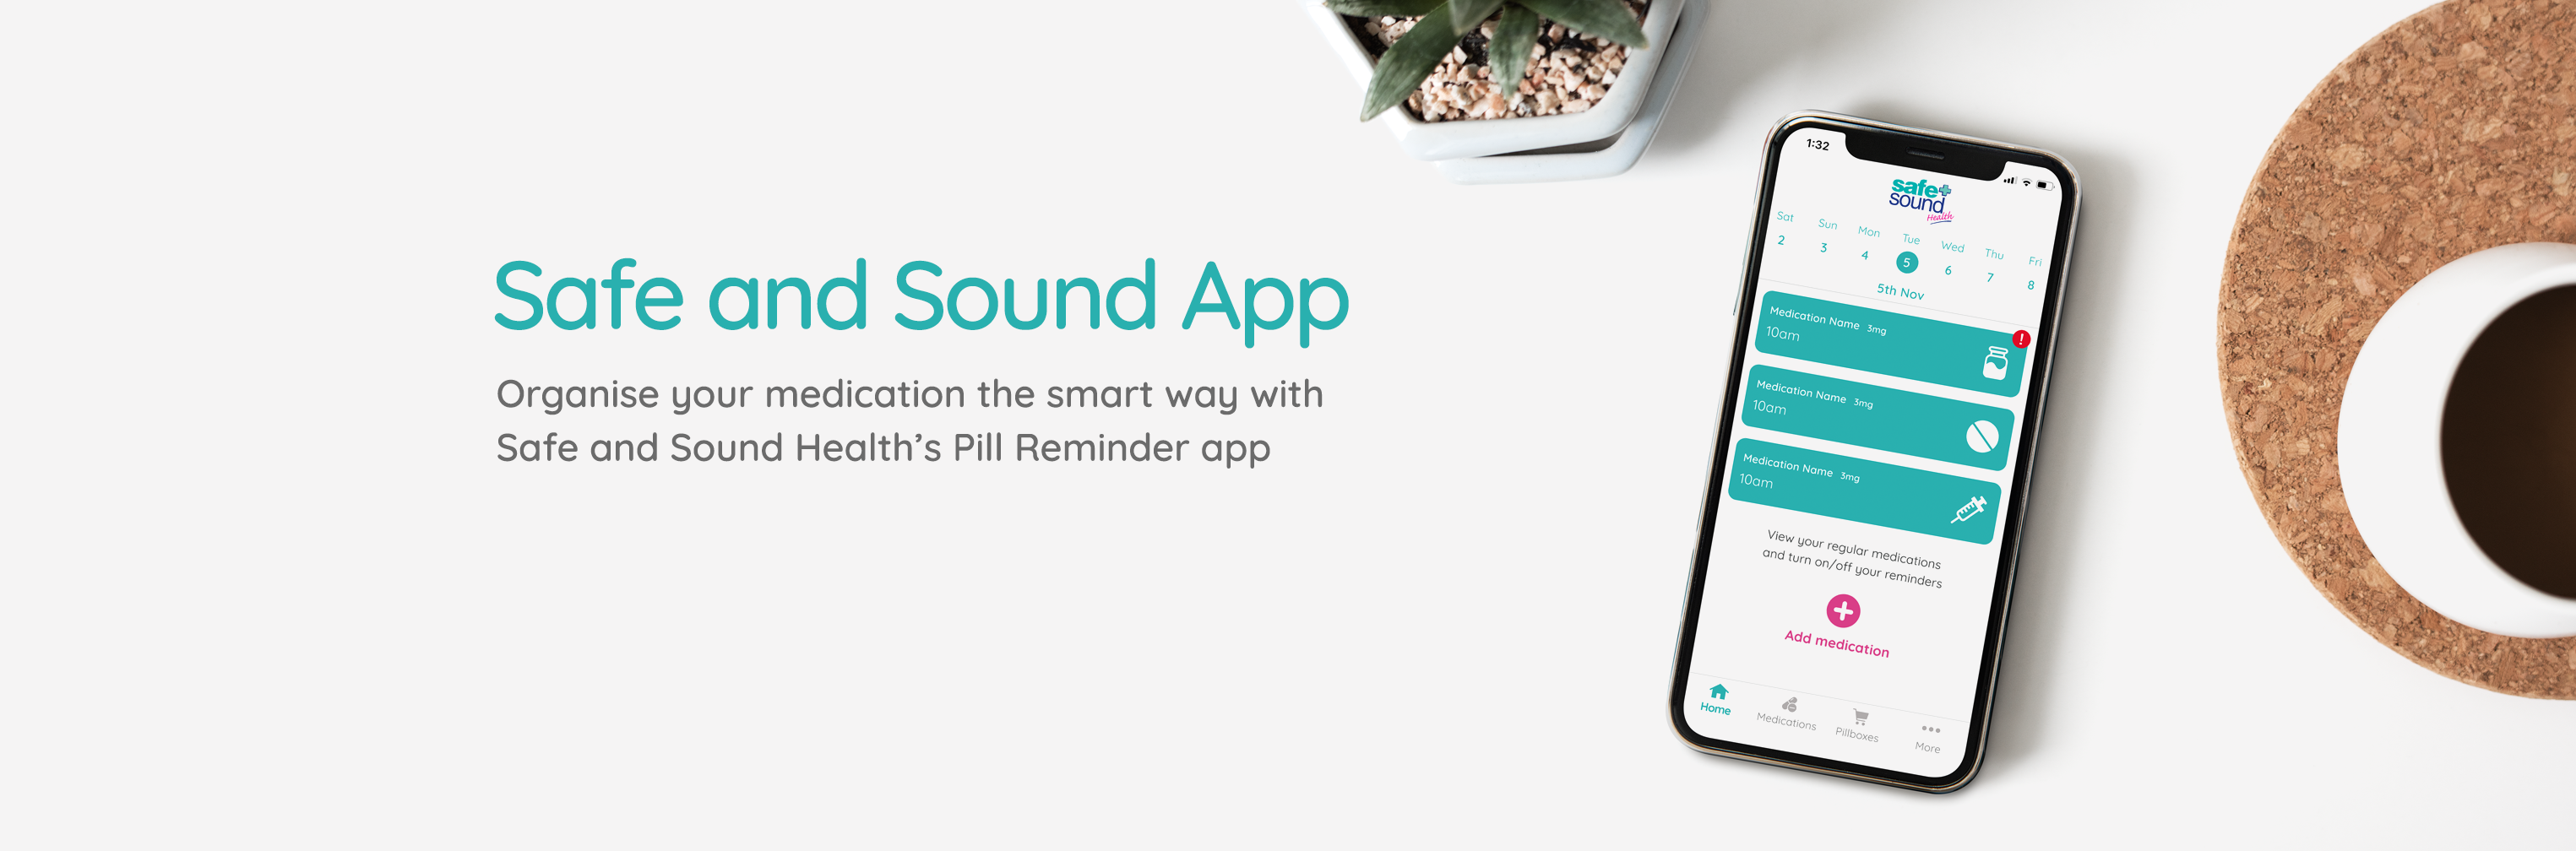 Safe and Sound Health's Pill Reminder App organised your medication the smart way